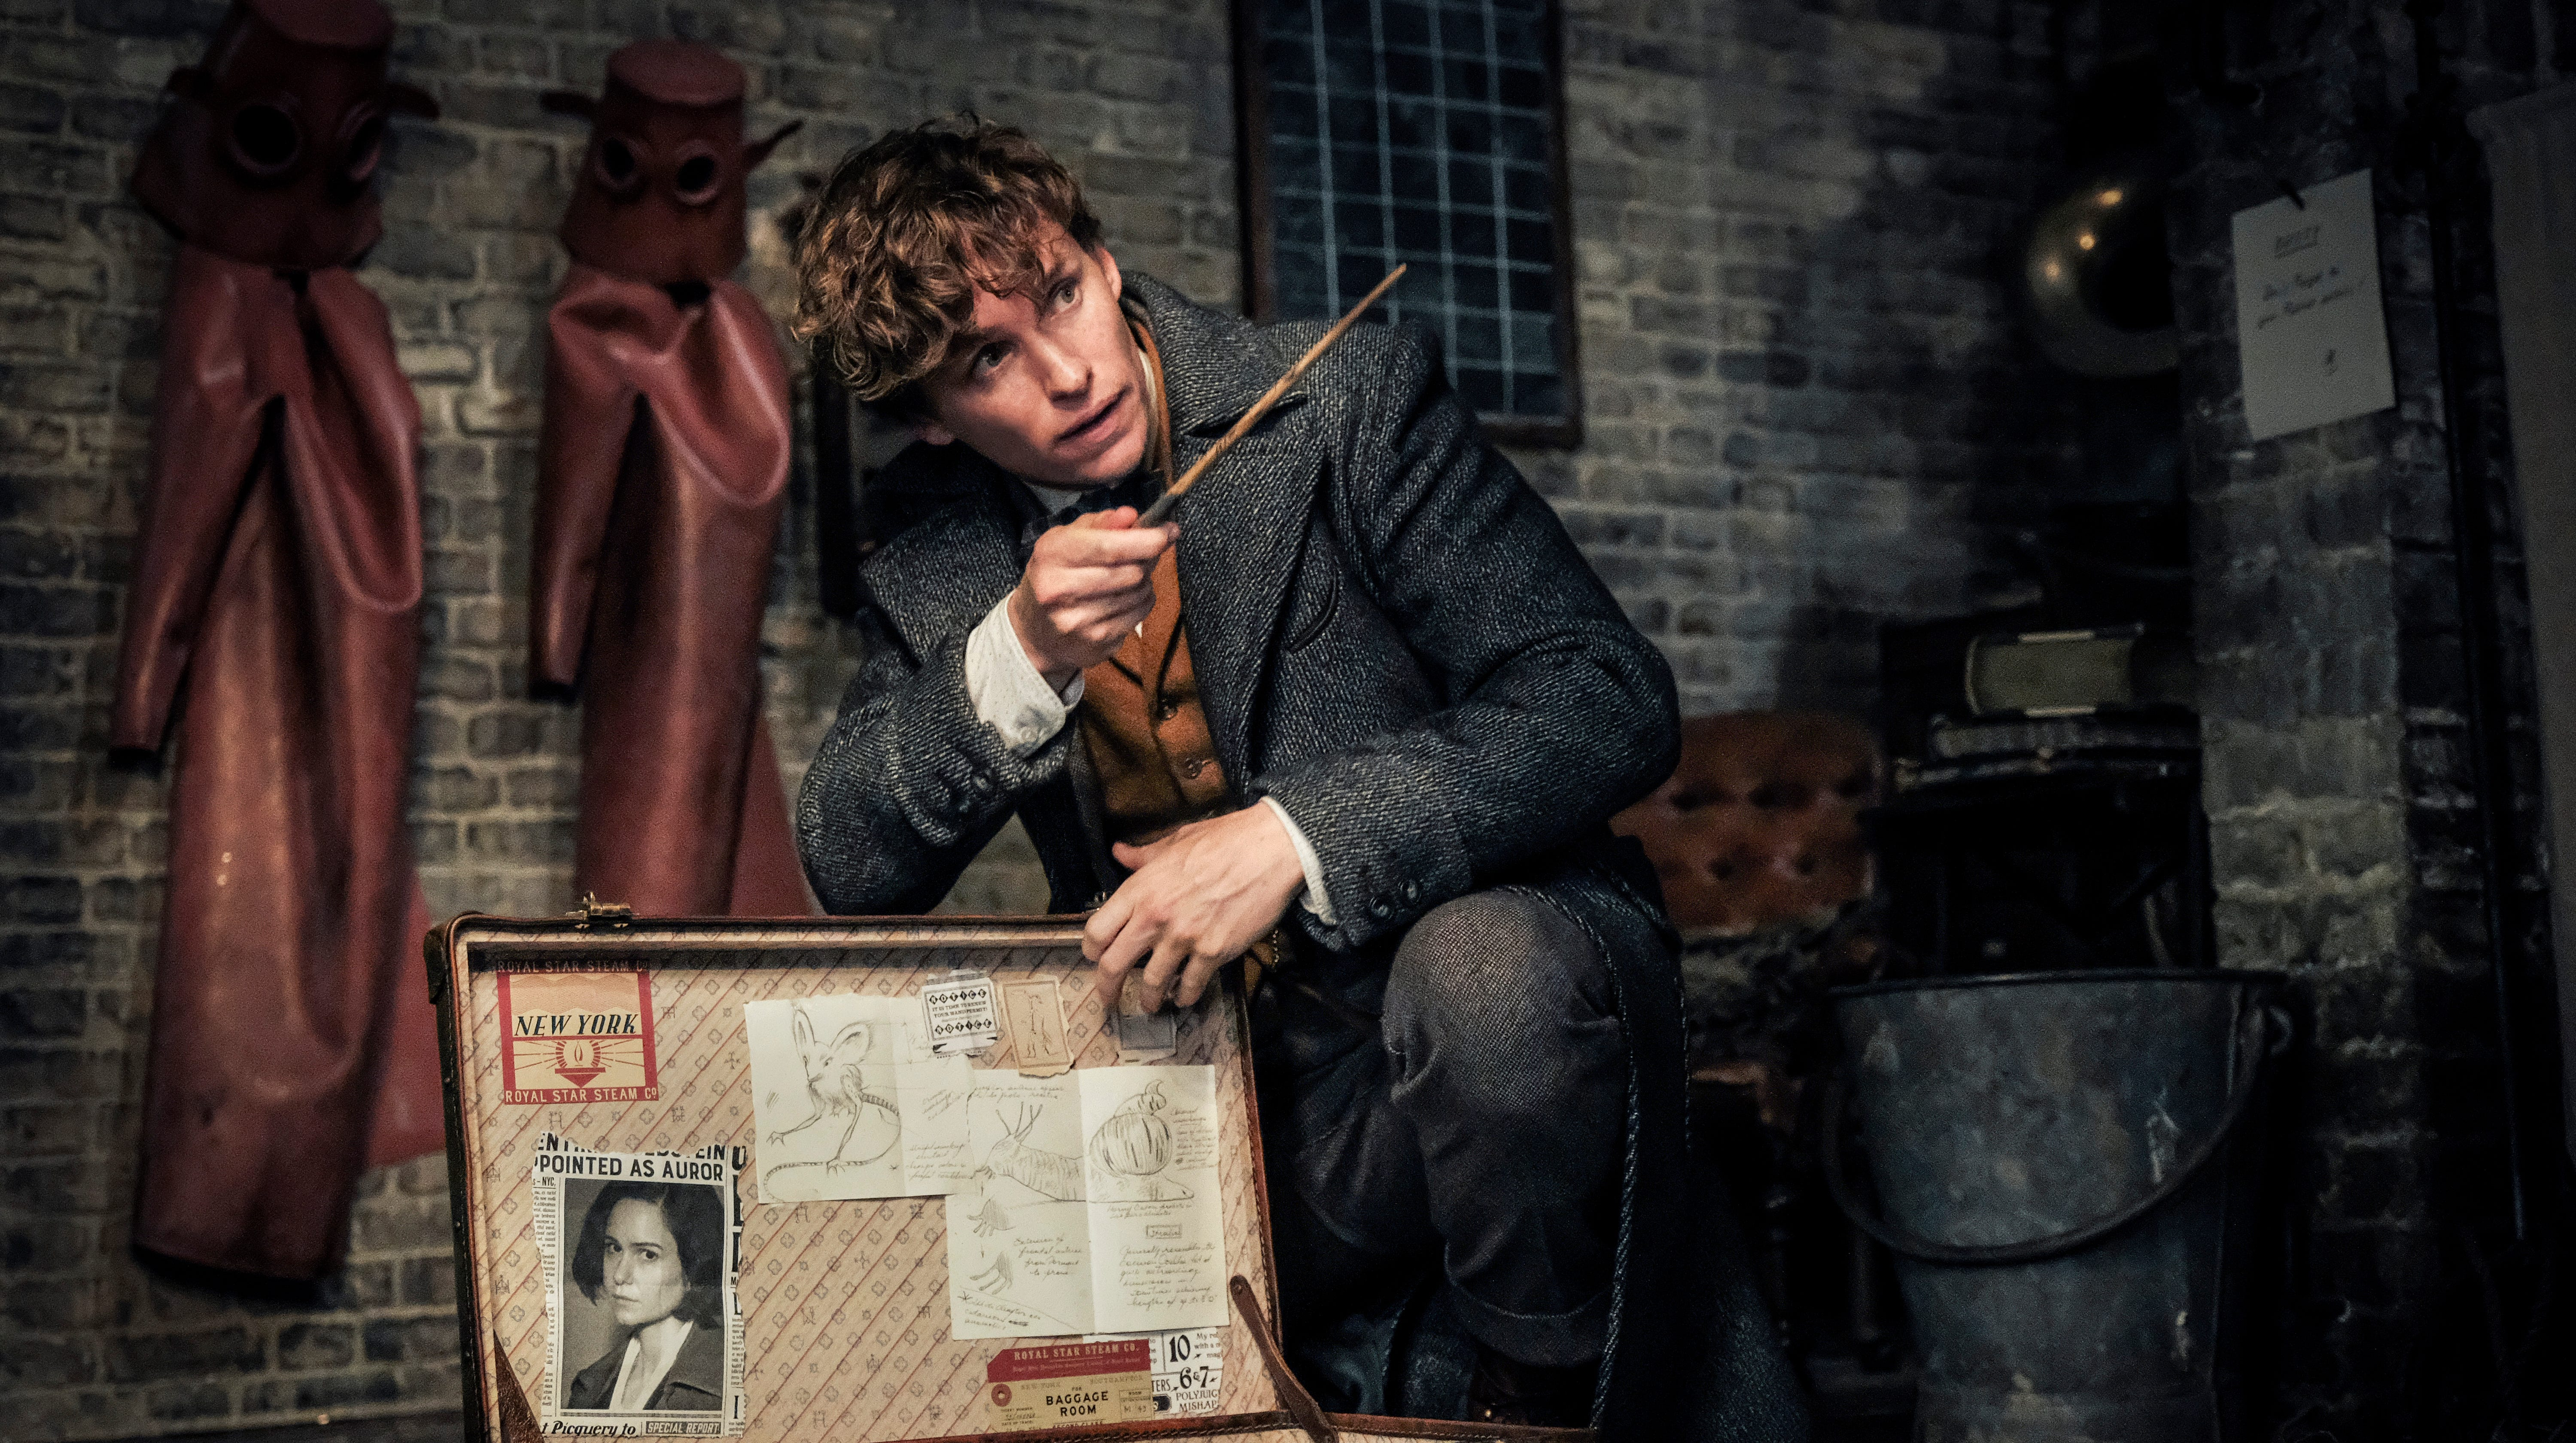 Top movies at box office: 'Fantastic Beasts' sequel has magical opening weekend